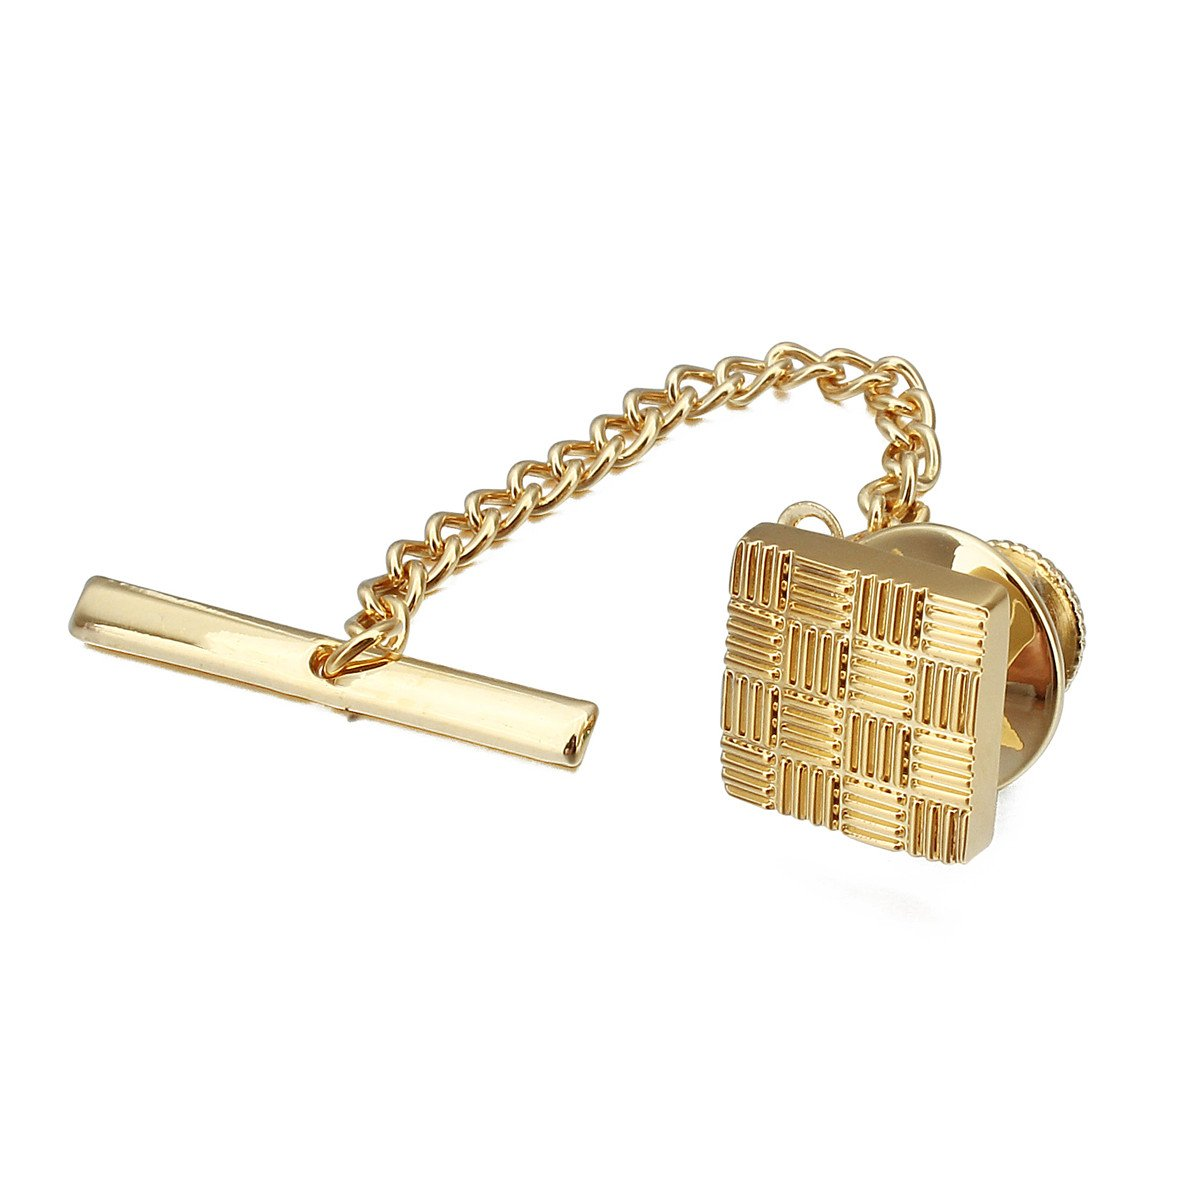 HAWSON Mens Square Tie Tack with Chains Check Tie Clip Button by HAWSON